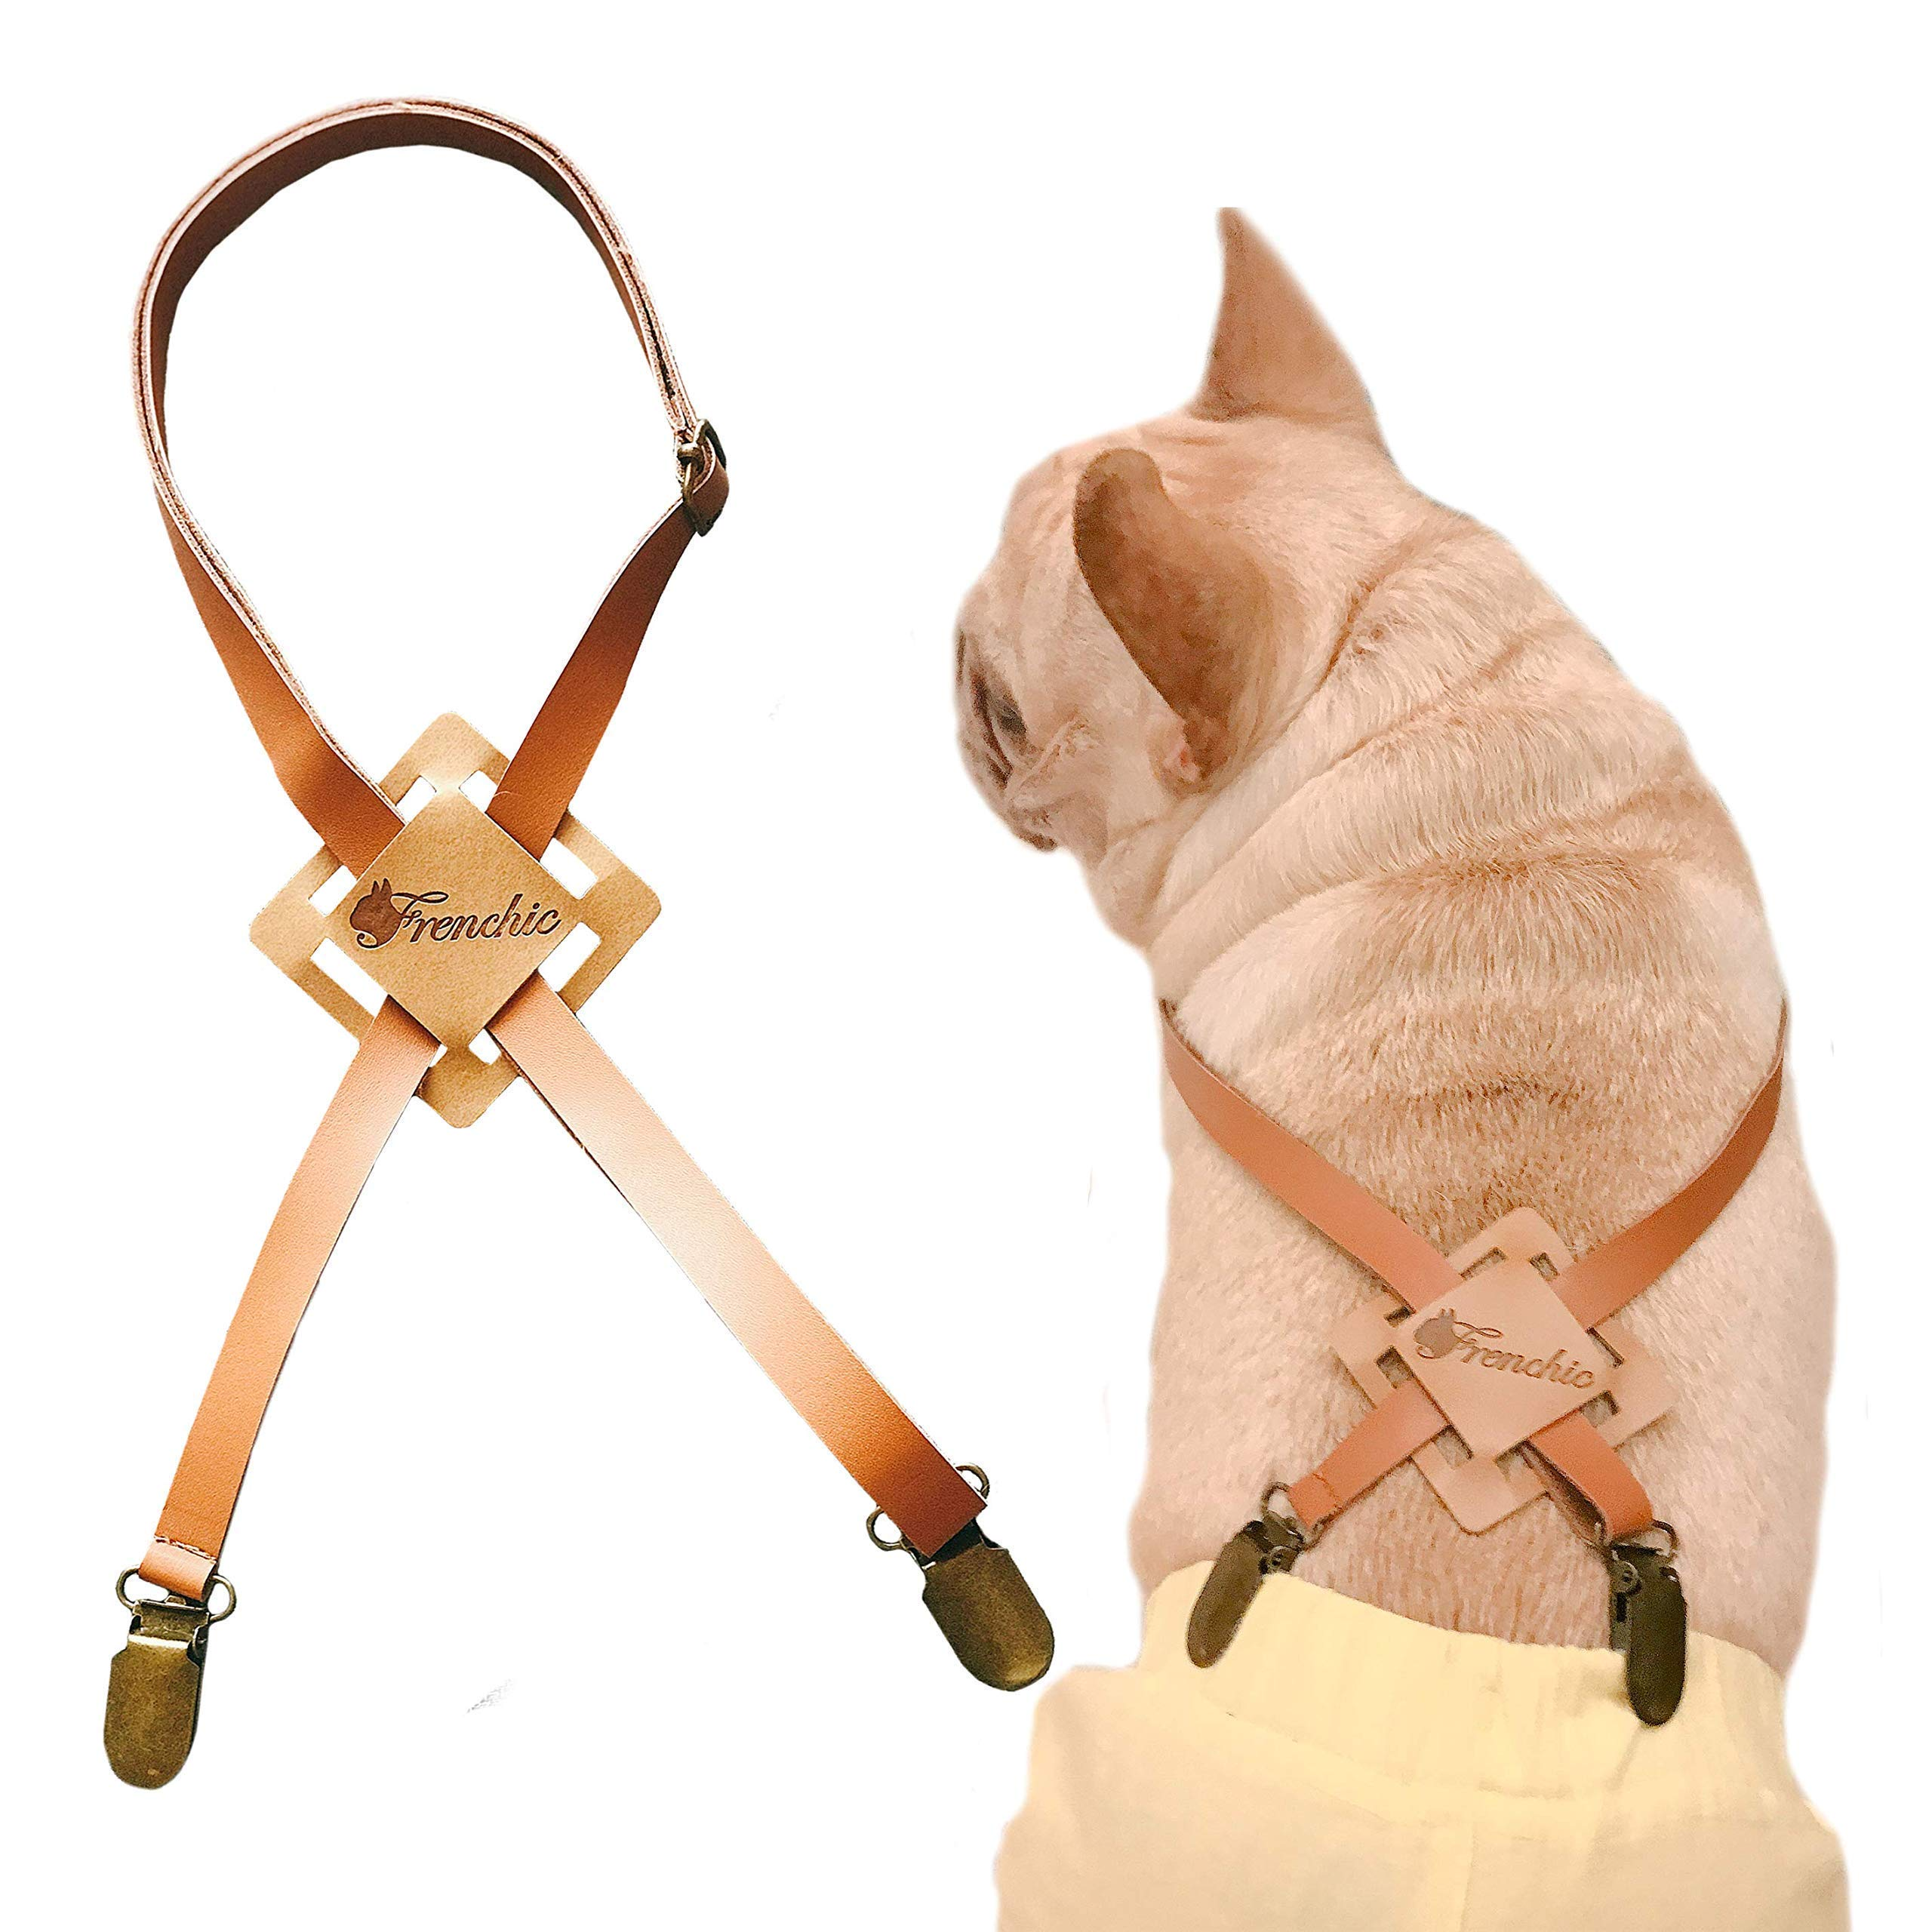 Frenchic Pet ® Handmade Suspender for Diapers Pants Dog Belly Bands